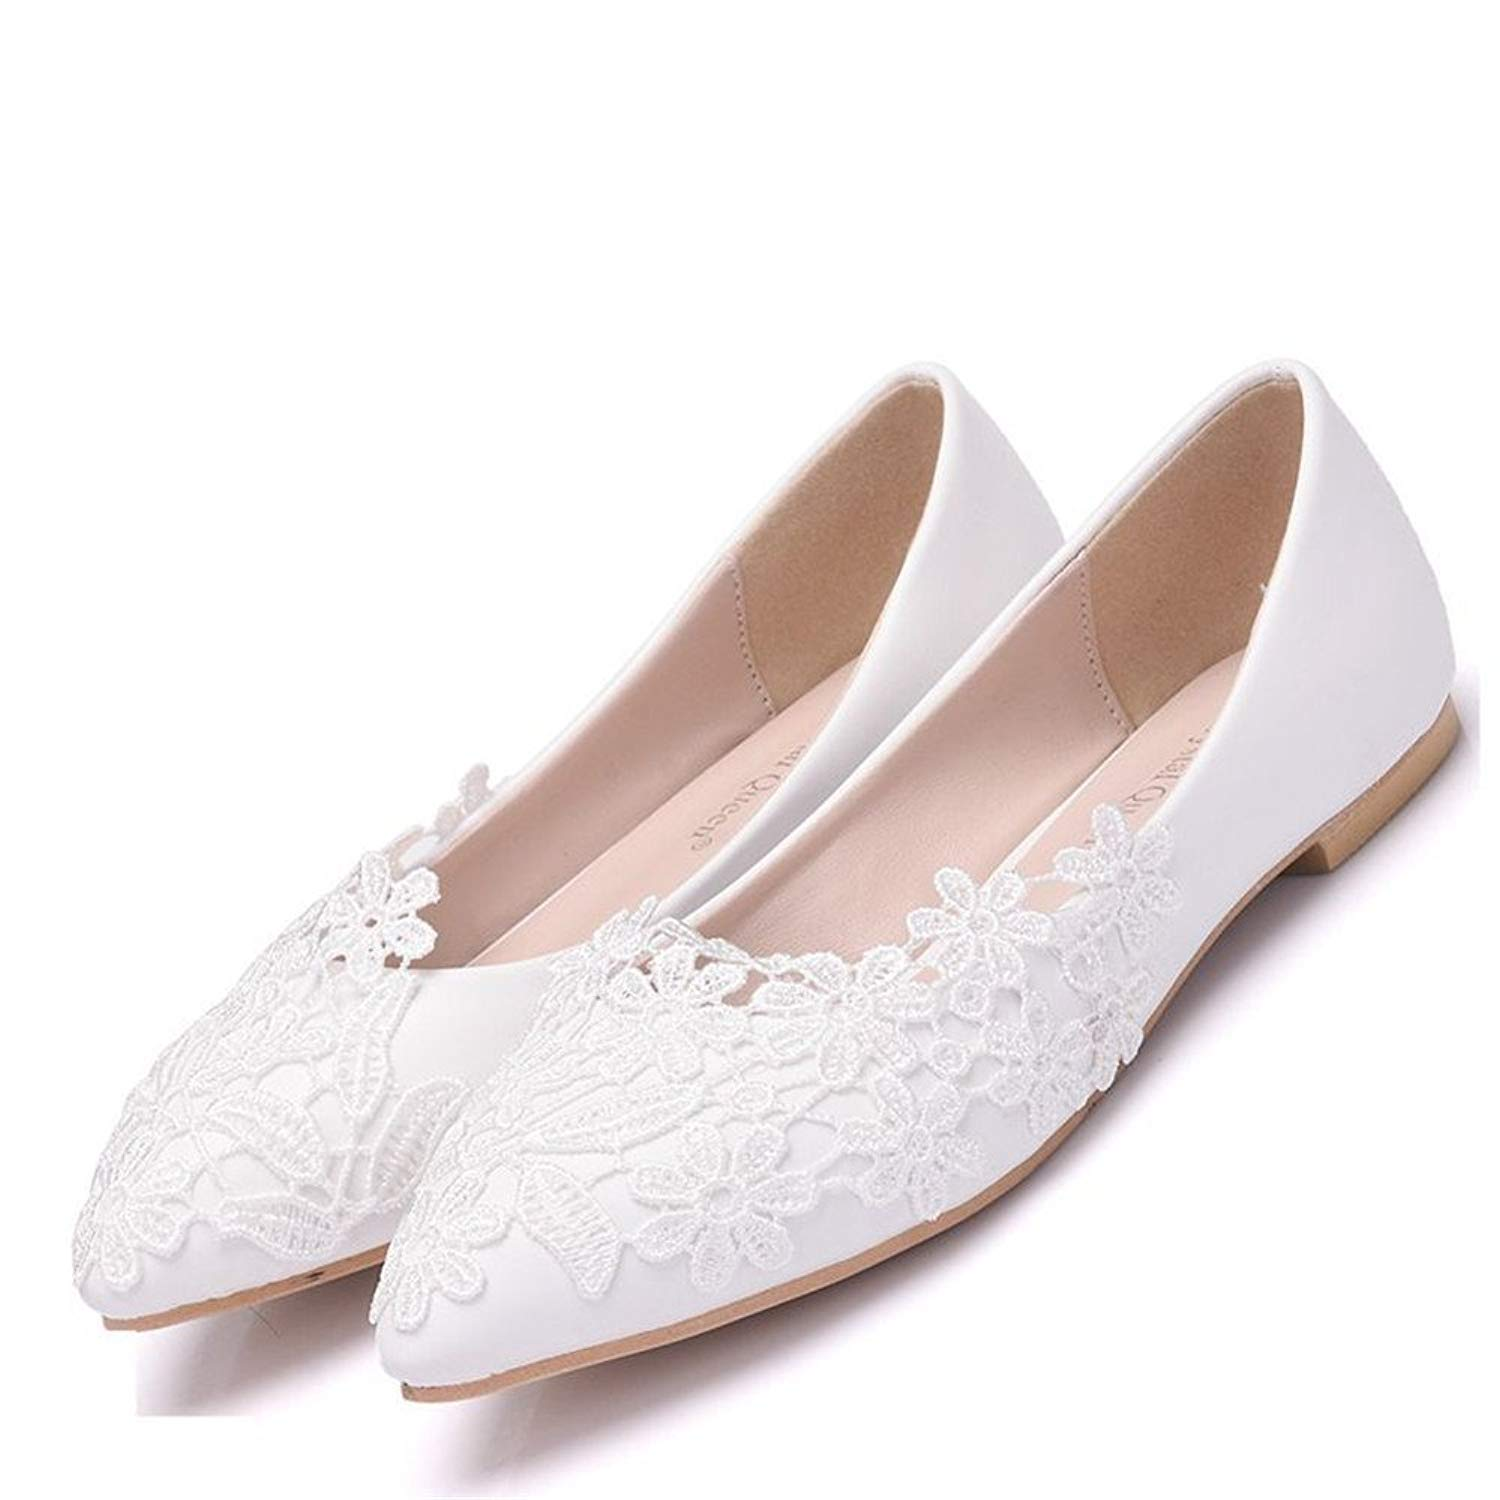 dfe30bdad4c Get Quotations · HYP Wedding Women Shoes Wedding Shoes Women Pumps Closed  Toe Wedding Party Court Shoes